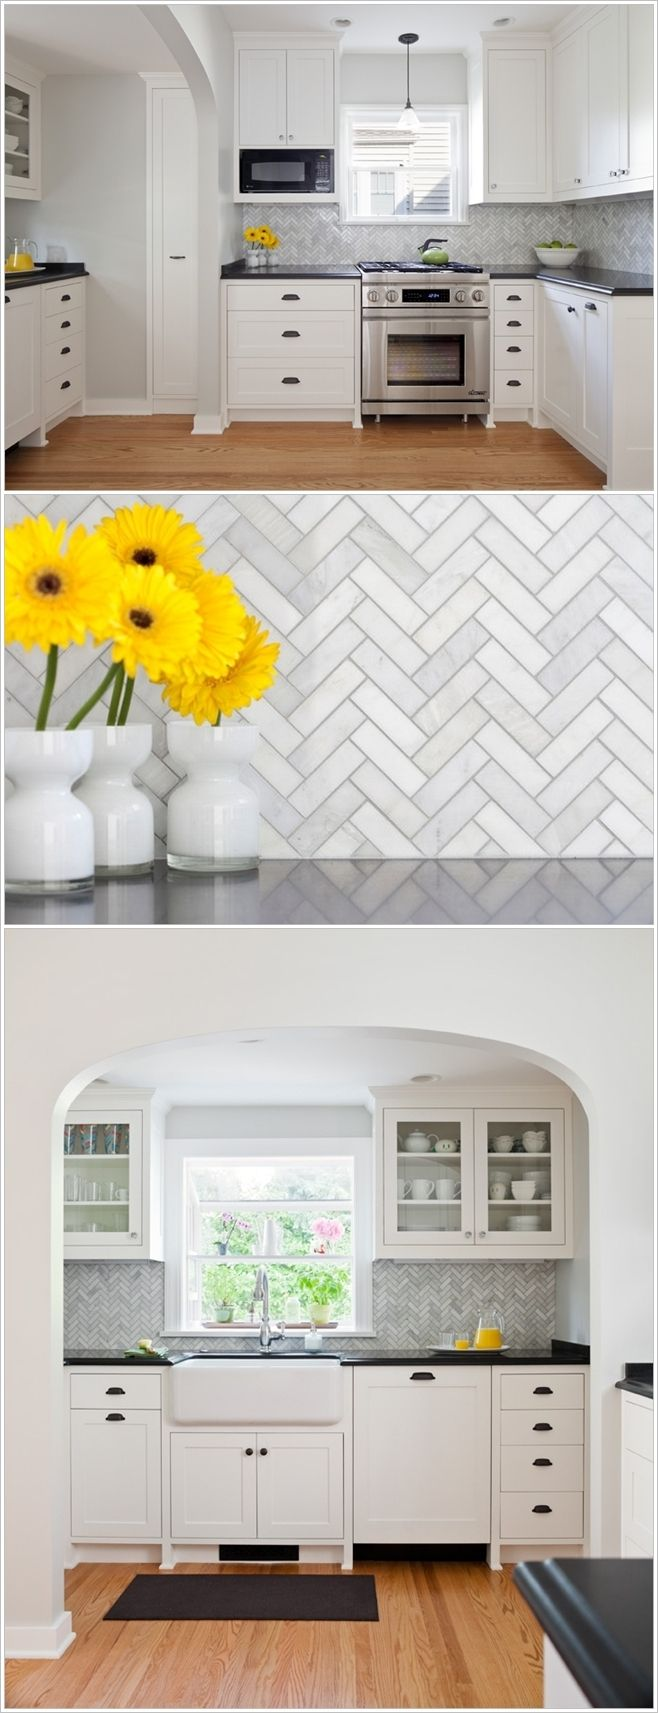 White Kitchen Tiles 1000 Images About White Grey Kitchen With Pops Of Color On